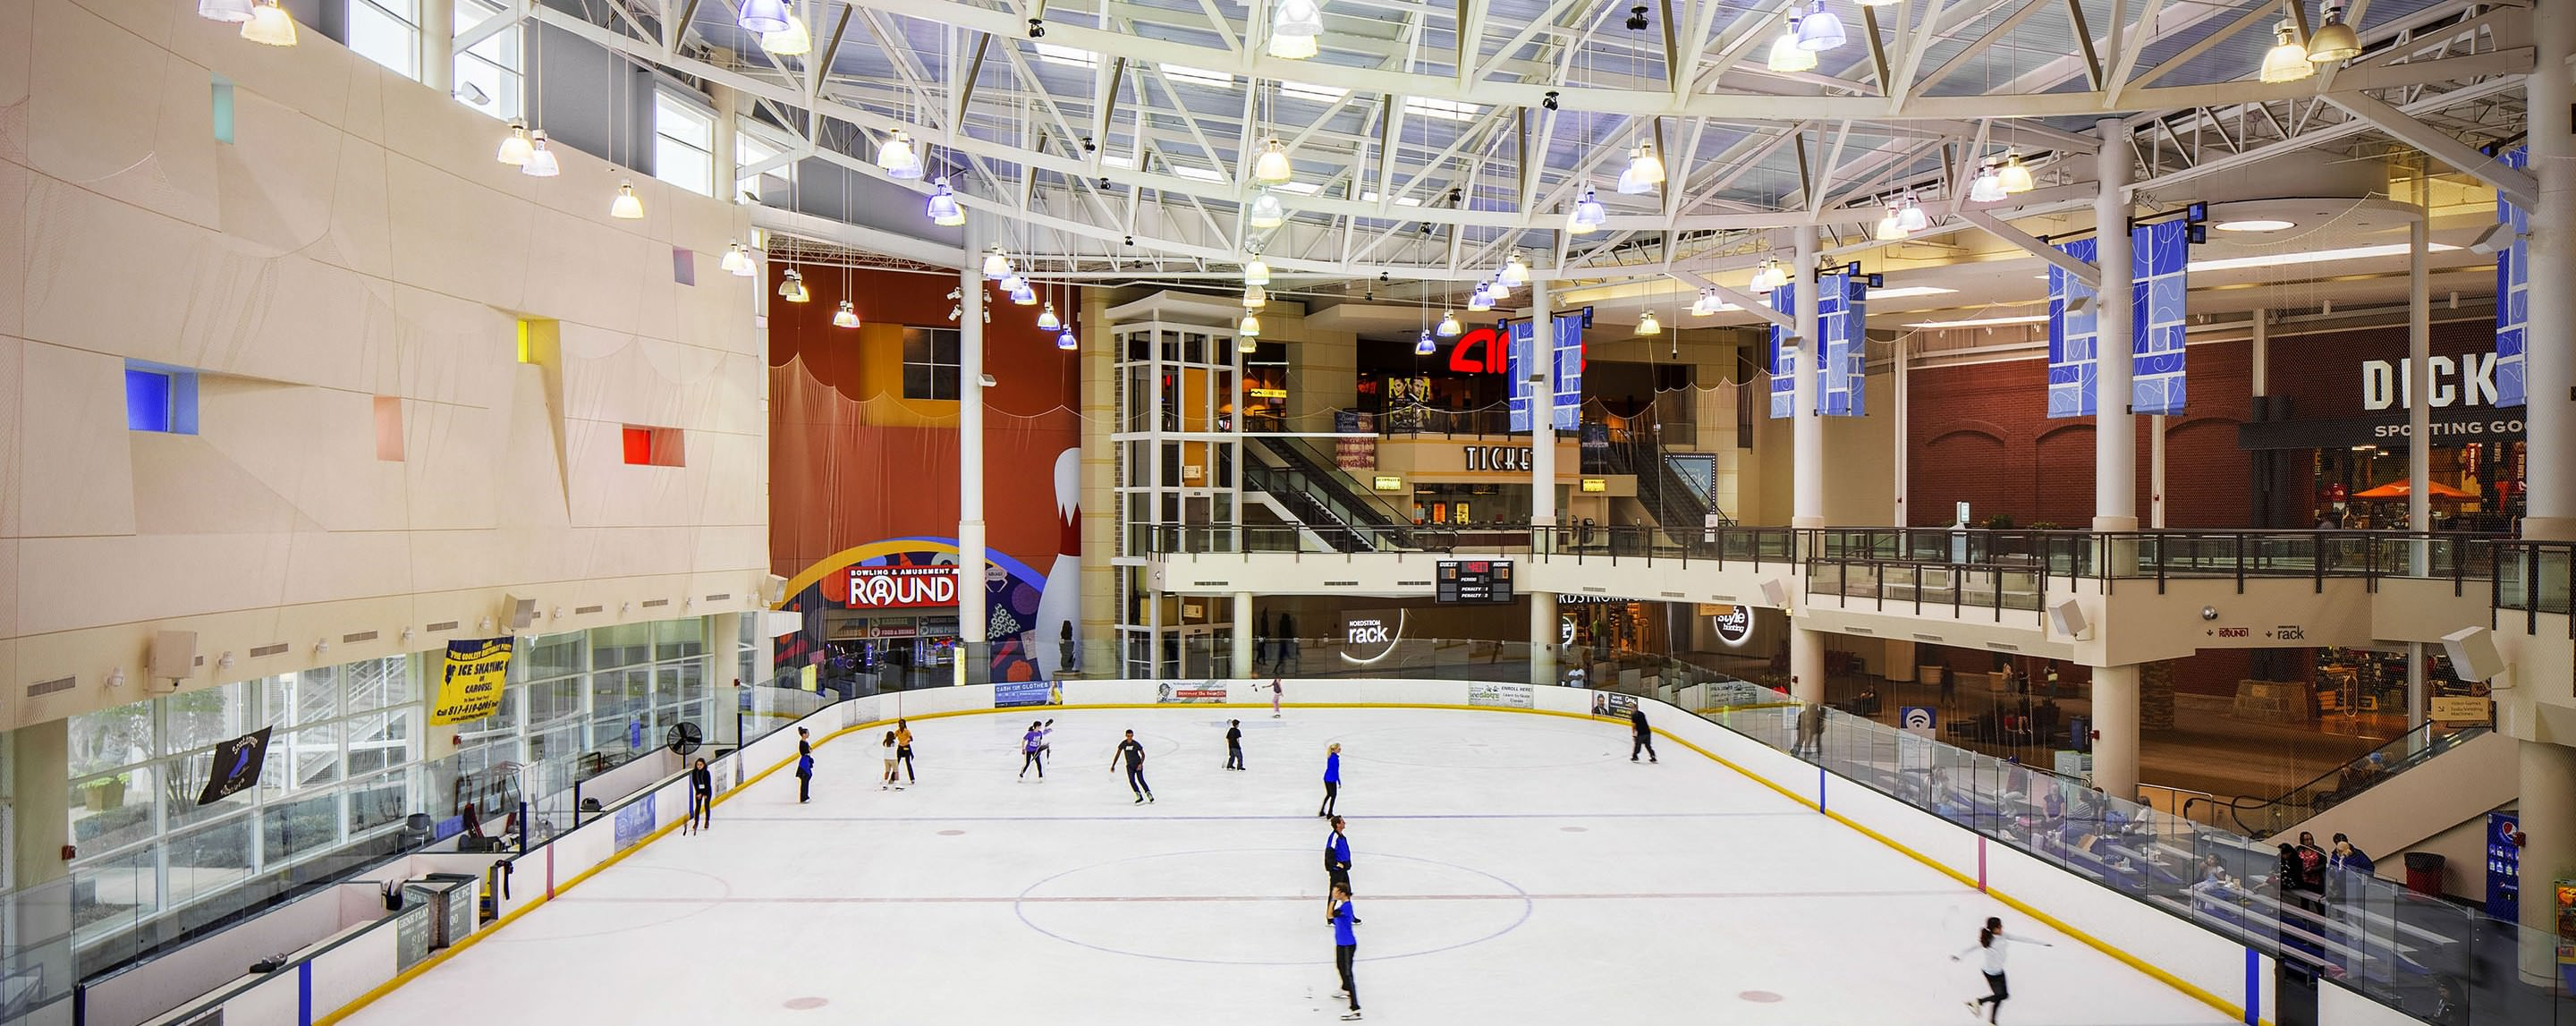 An image of an indoor skating rink at a mall. Dick's Sporting Goods is visible in the background.